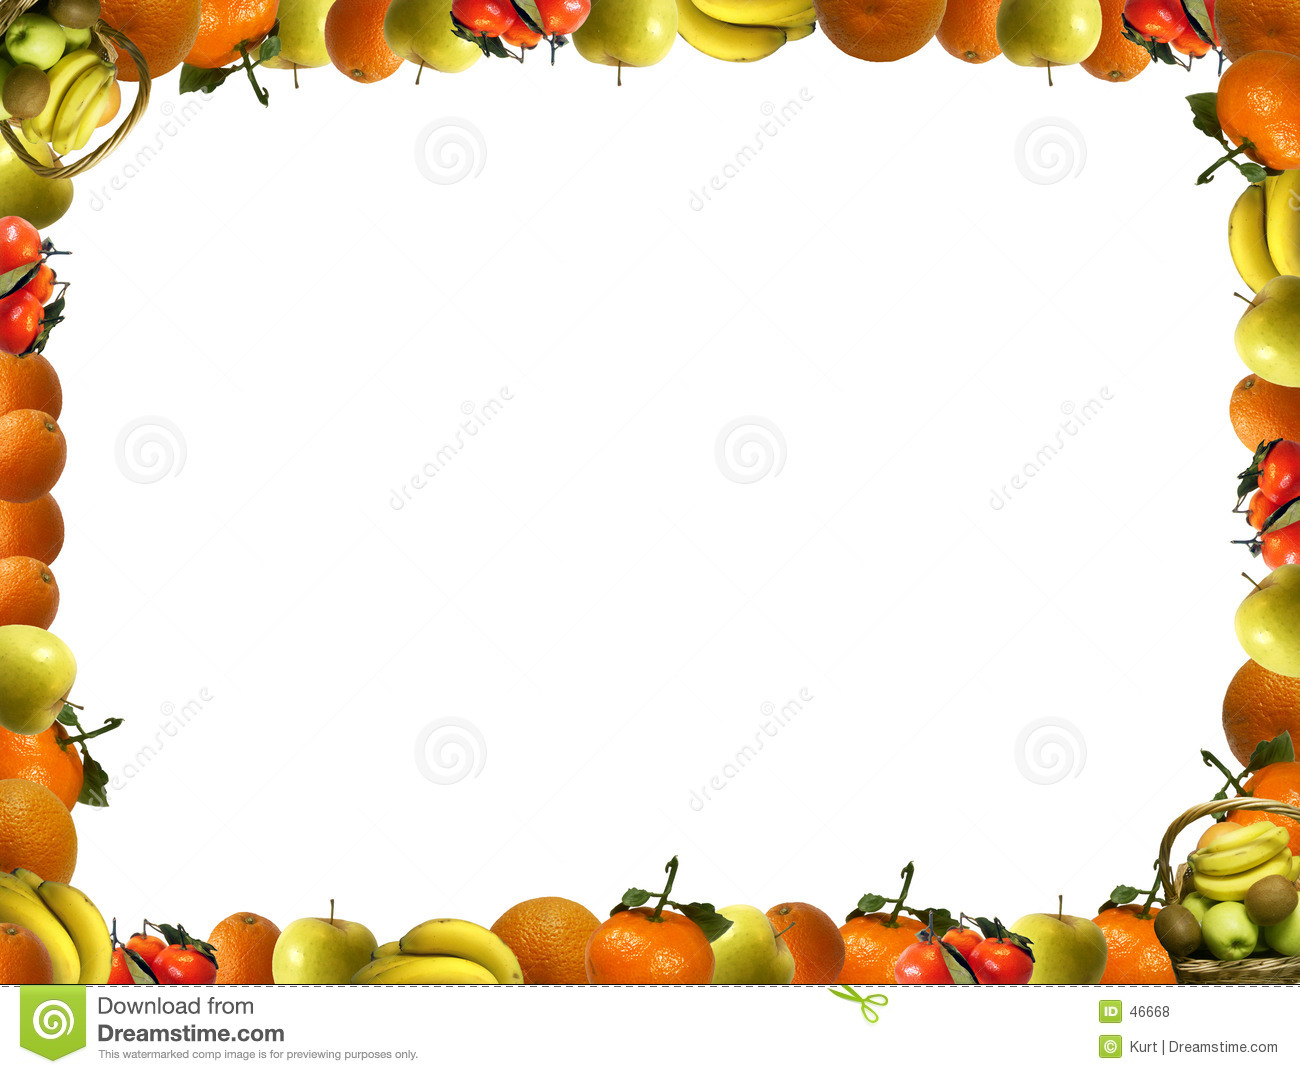 Vegetable Garden In Fall Wallpaper Free Fruit Border Clip Art 20 Free Cliparts Download